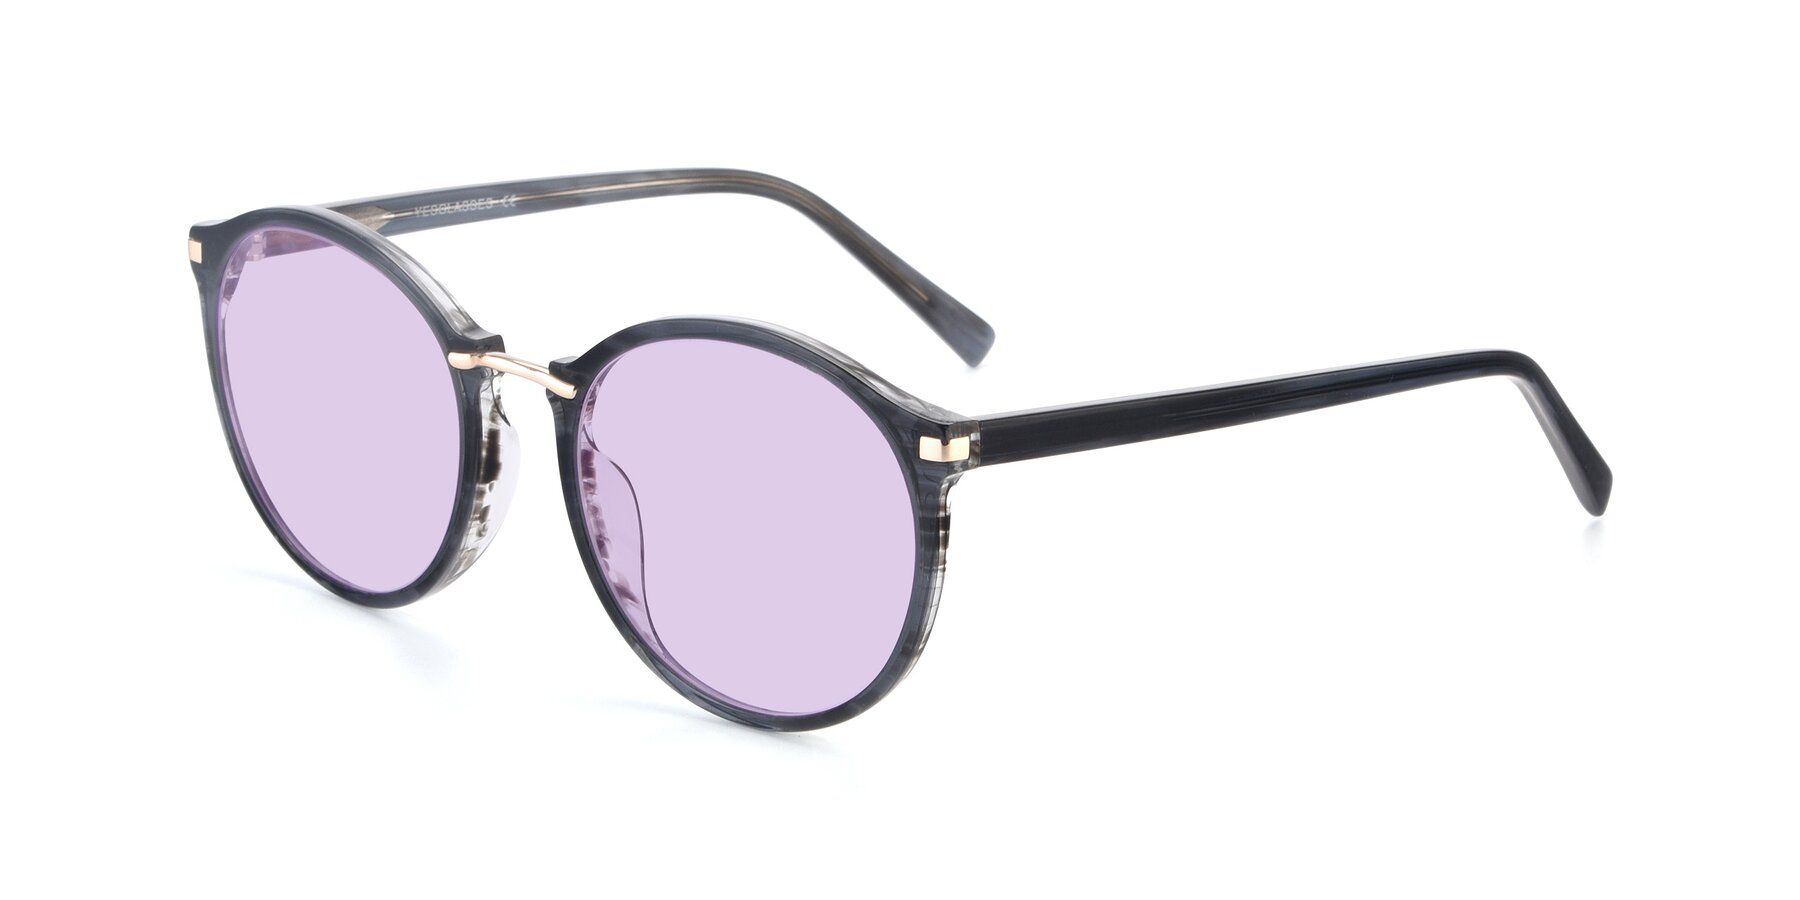 Angle of 17582 in Translucent Black with Light Purple Tinted Lenses